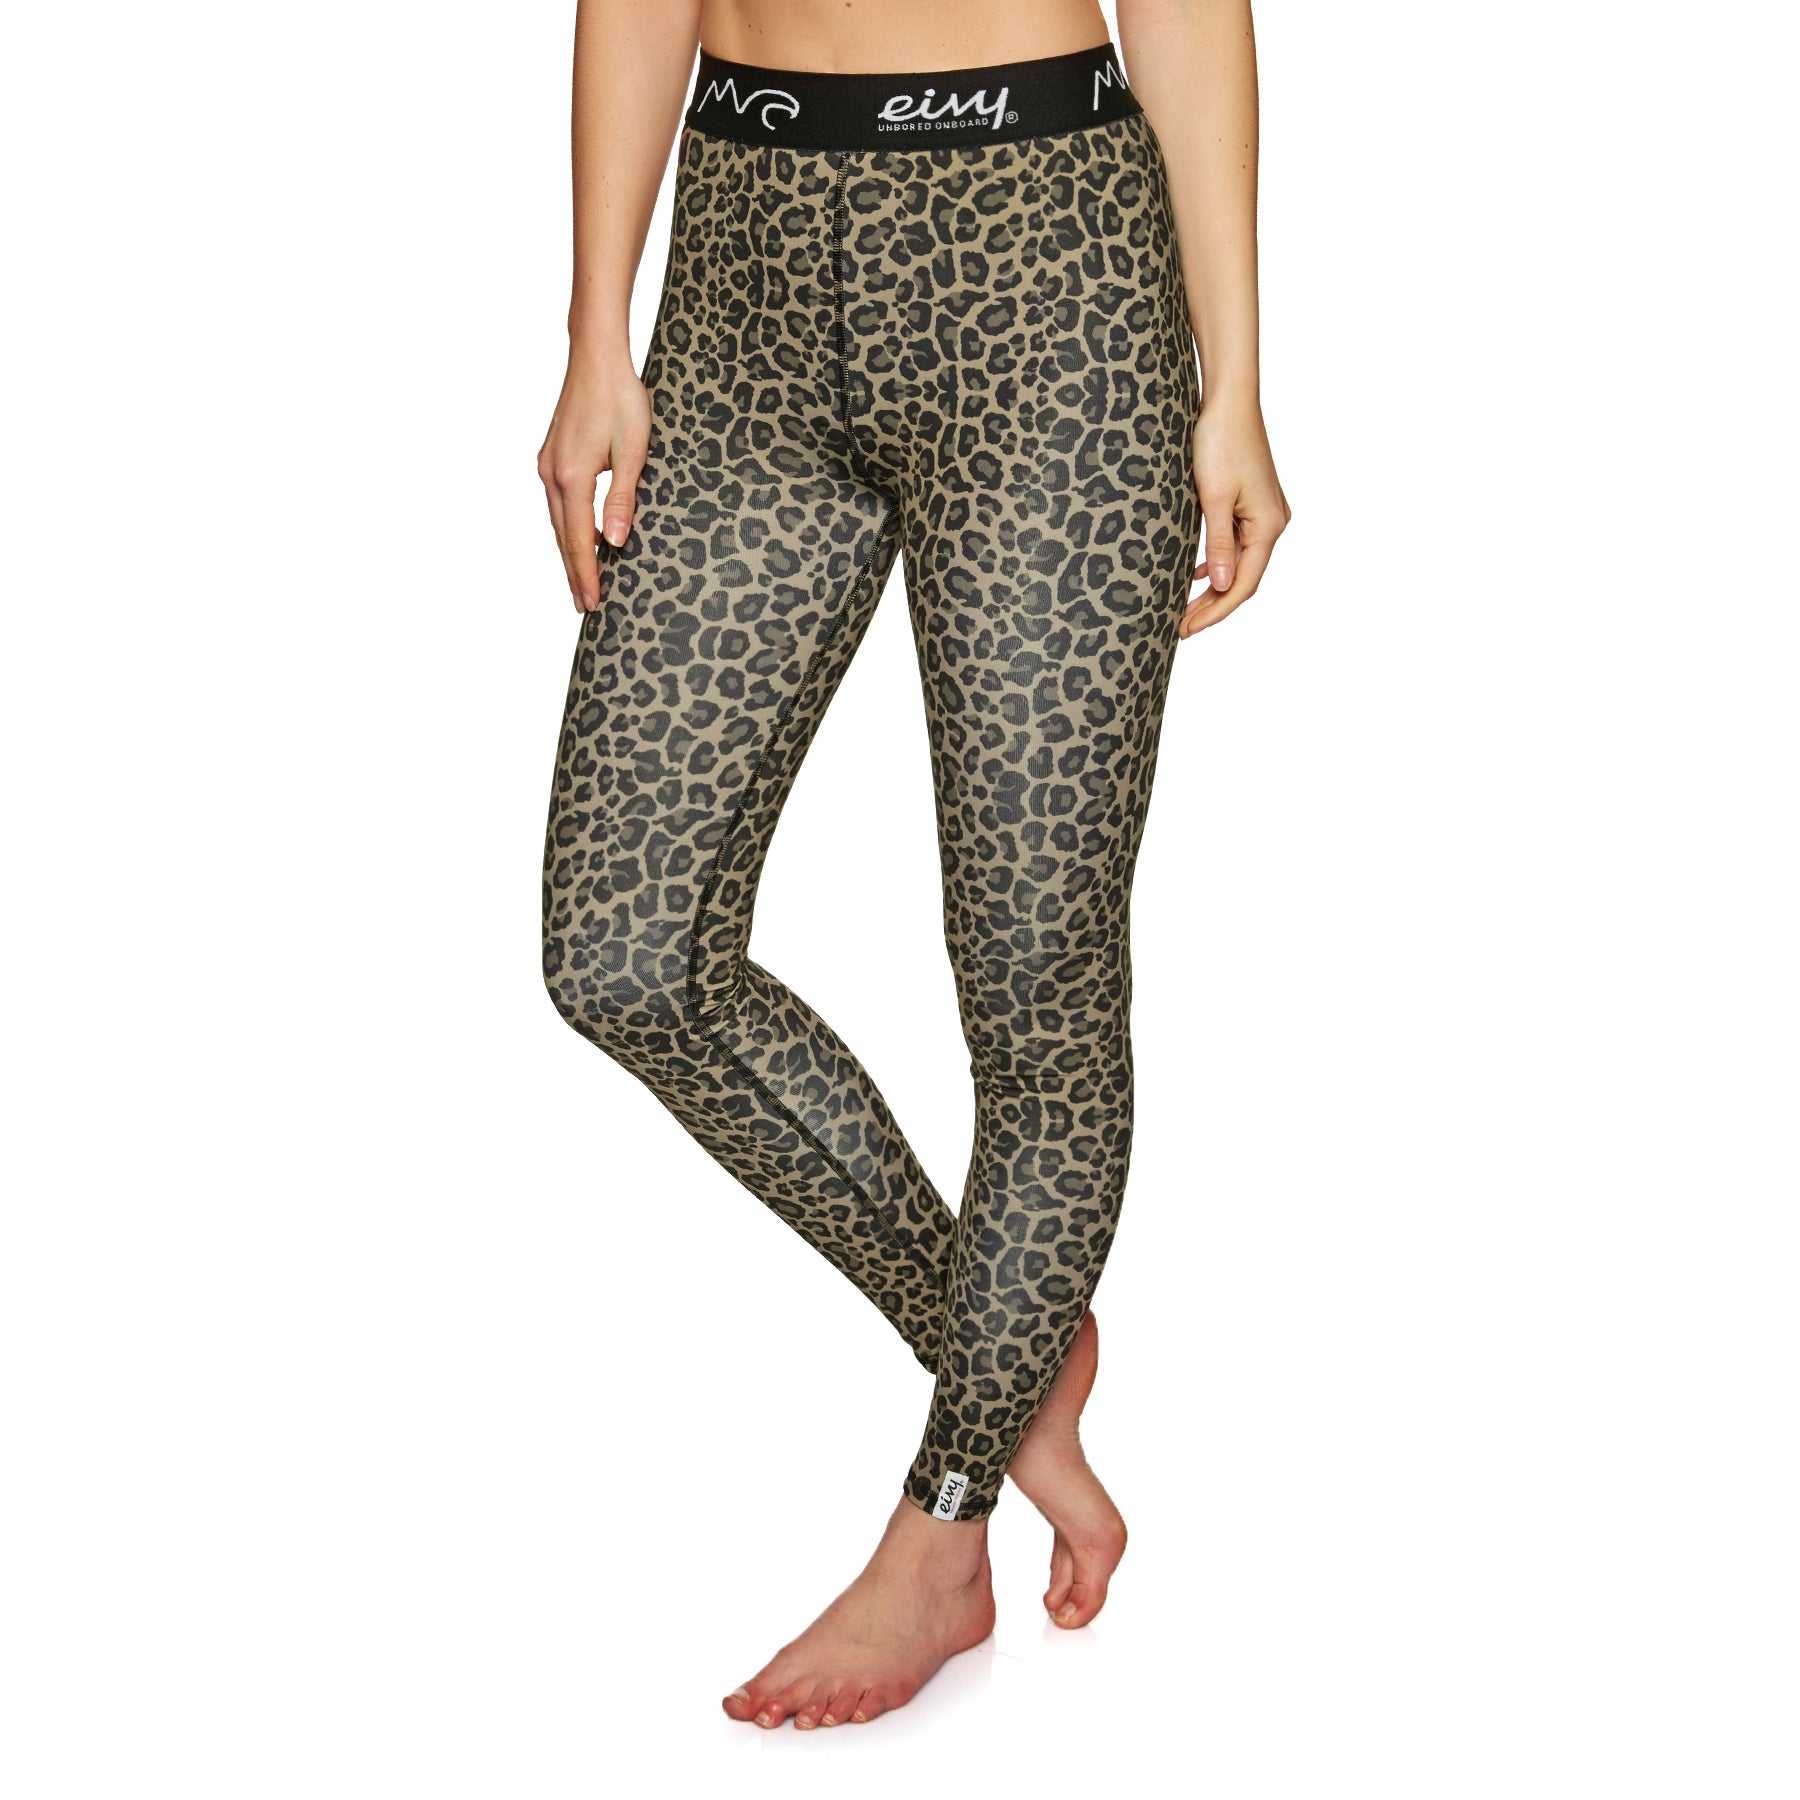 Eivy Icecold Tights Leopard L Womens Base Layer Leggings - Leopard